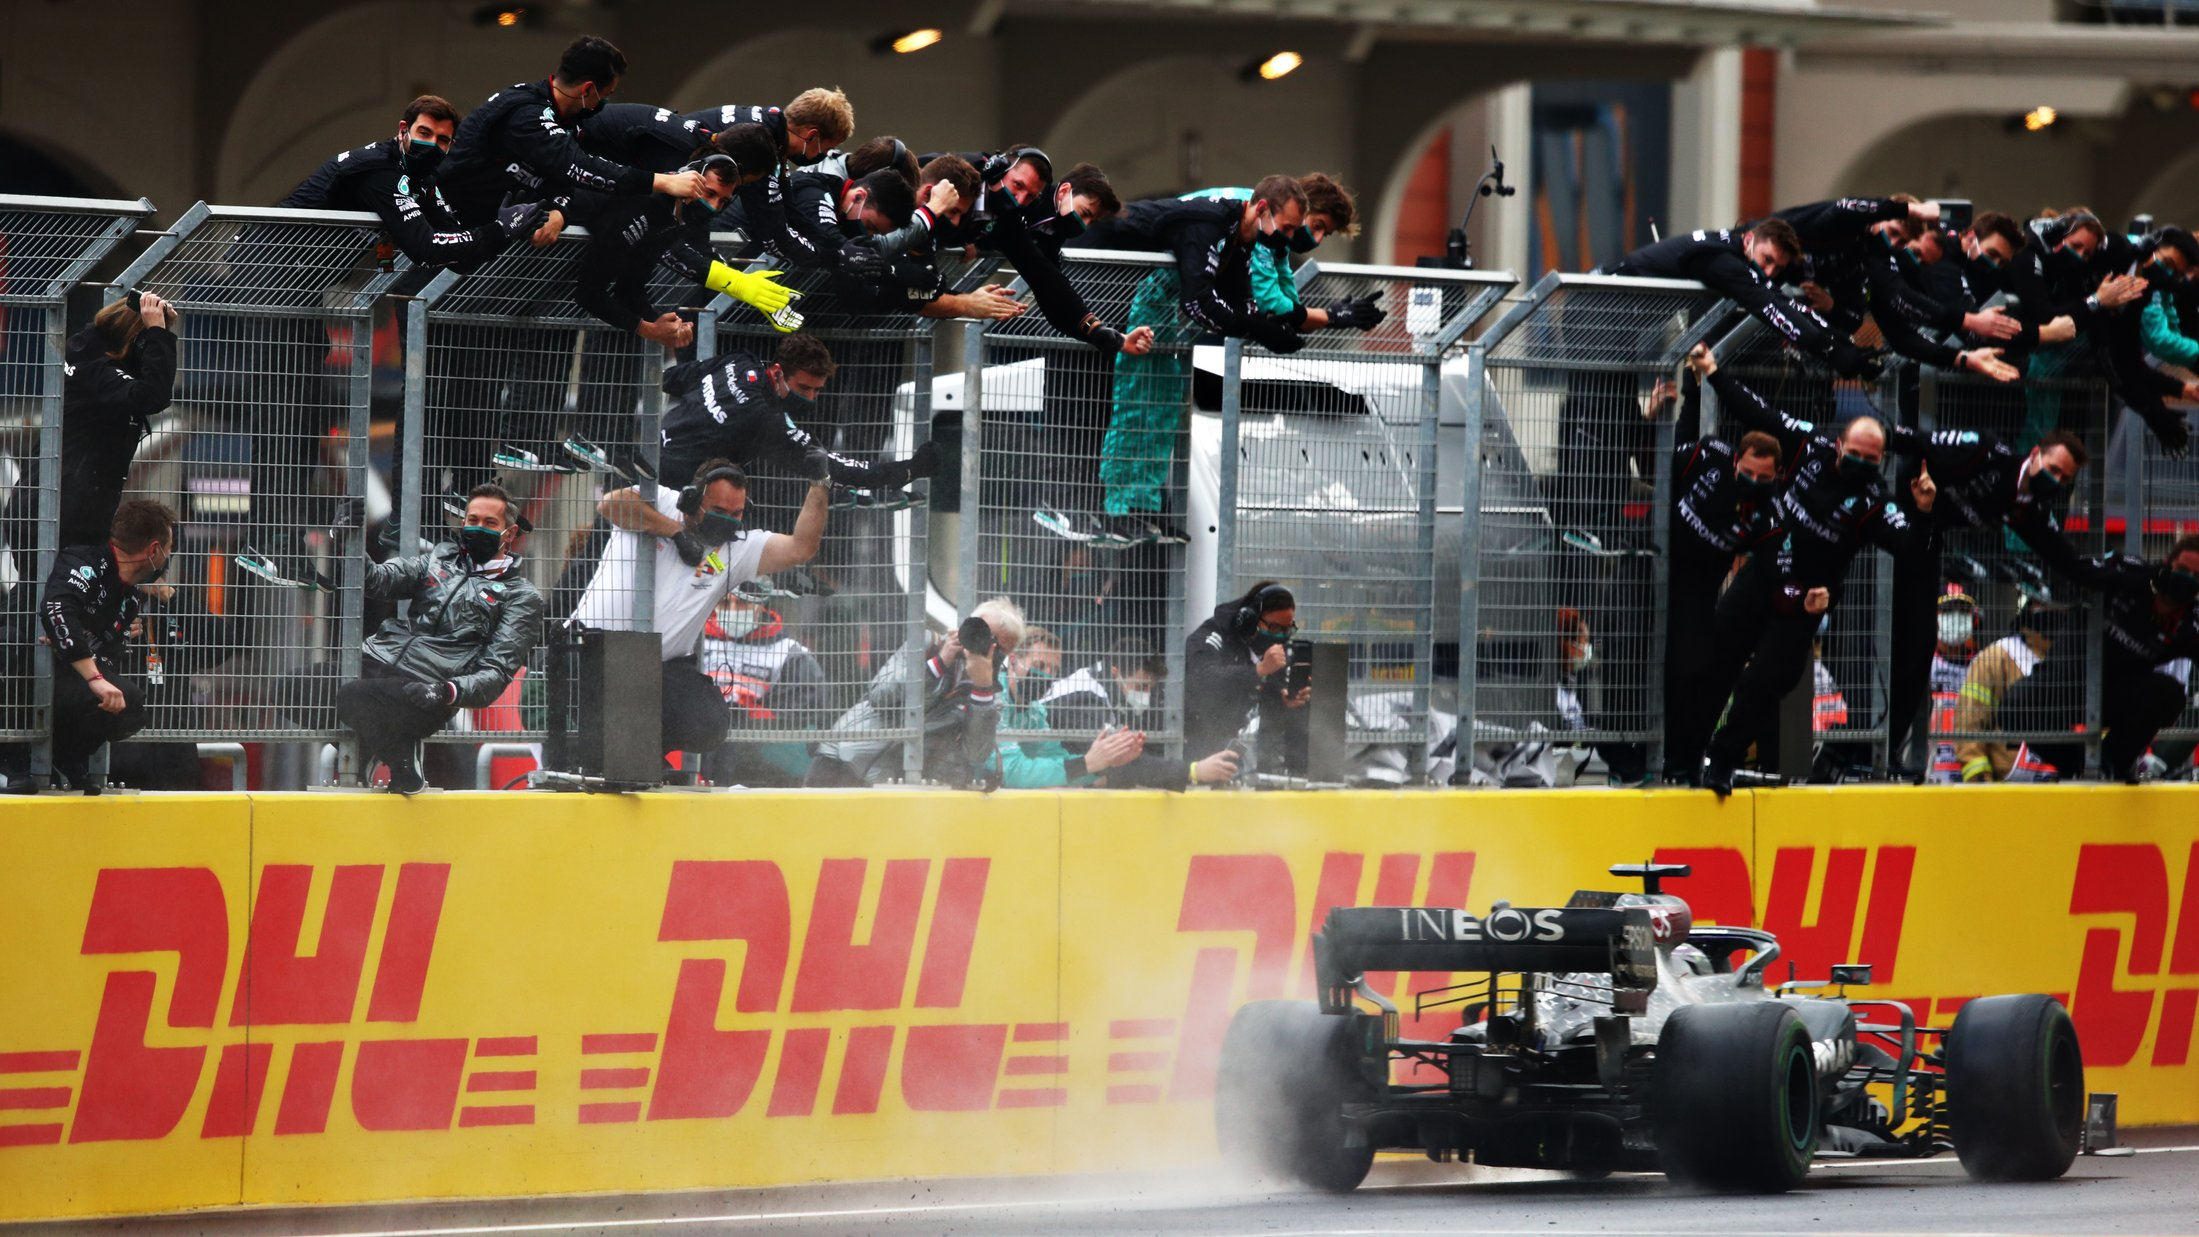 Turkish Grand Prix 2020 race report & highlights: Lewis Hamilton seals  historic 7th title with peerless wet-weather victory in Turkish Grand Prix  | Formula 1®